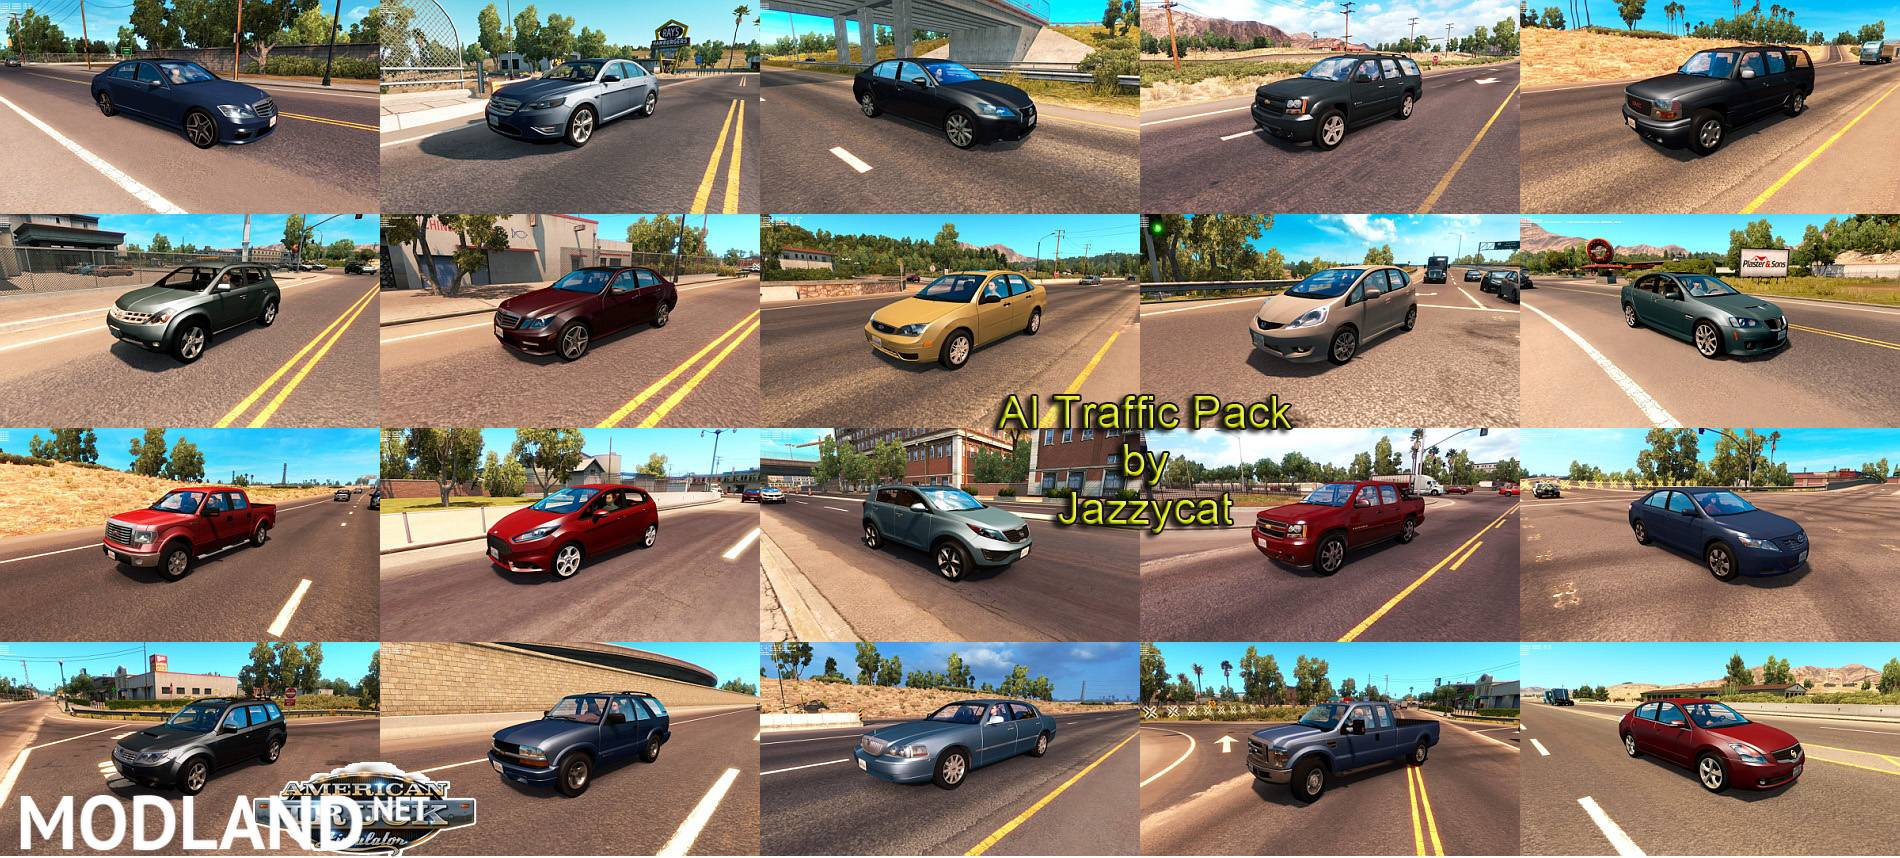 AI Traffic Pack by Jazzycat v 1.5 mod for American Truck ...